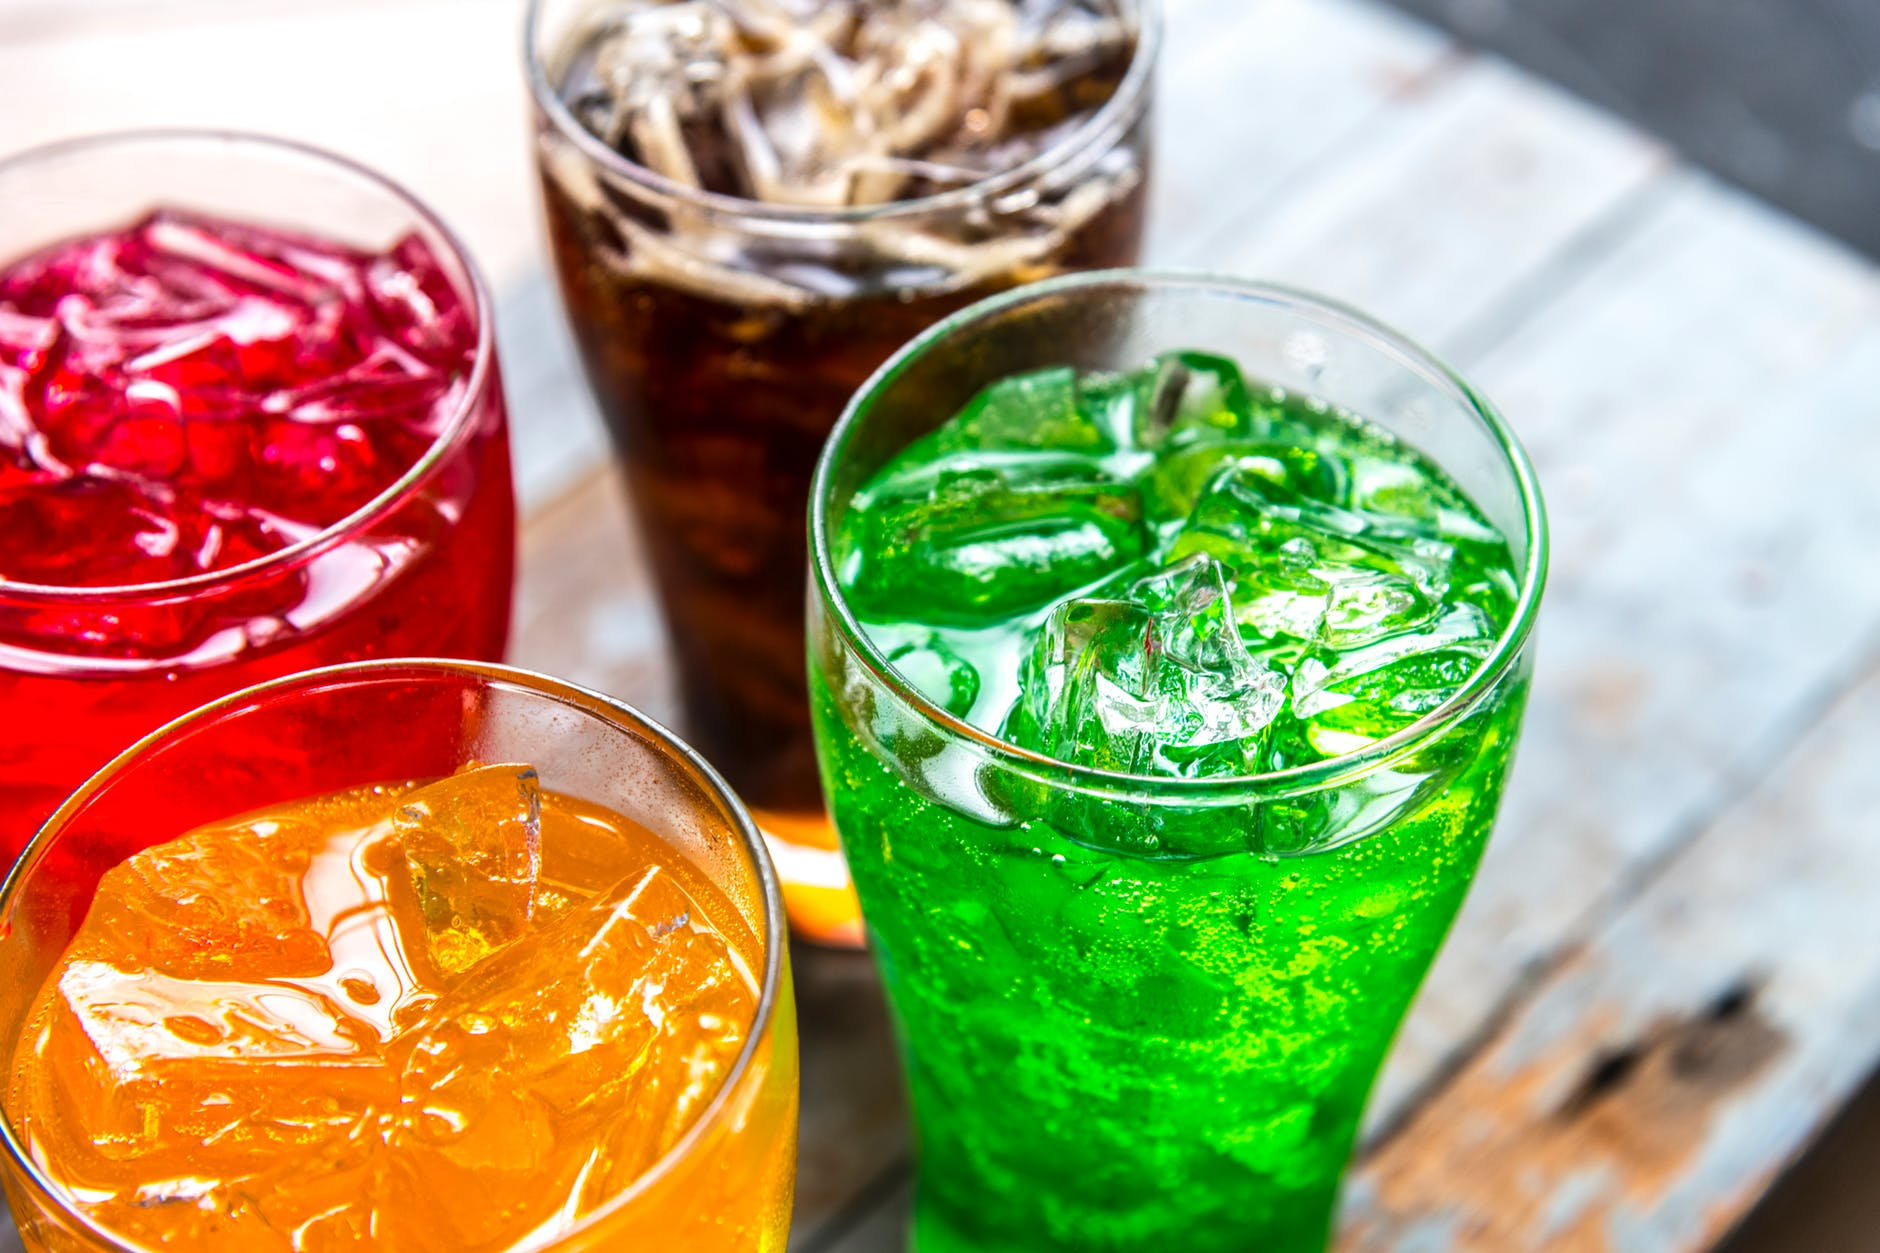 Report: soft drink market